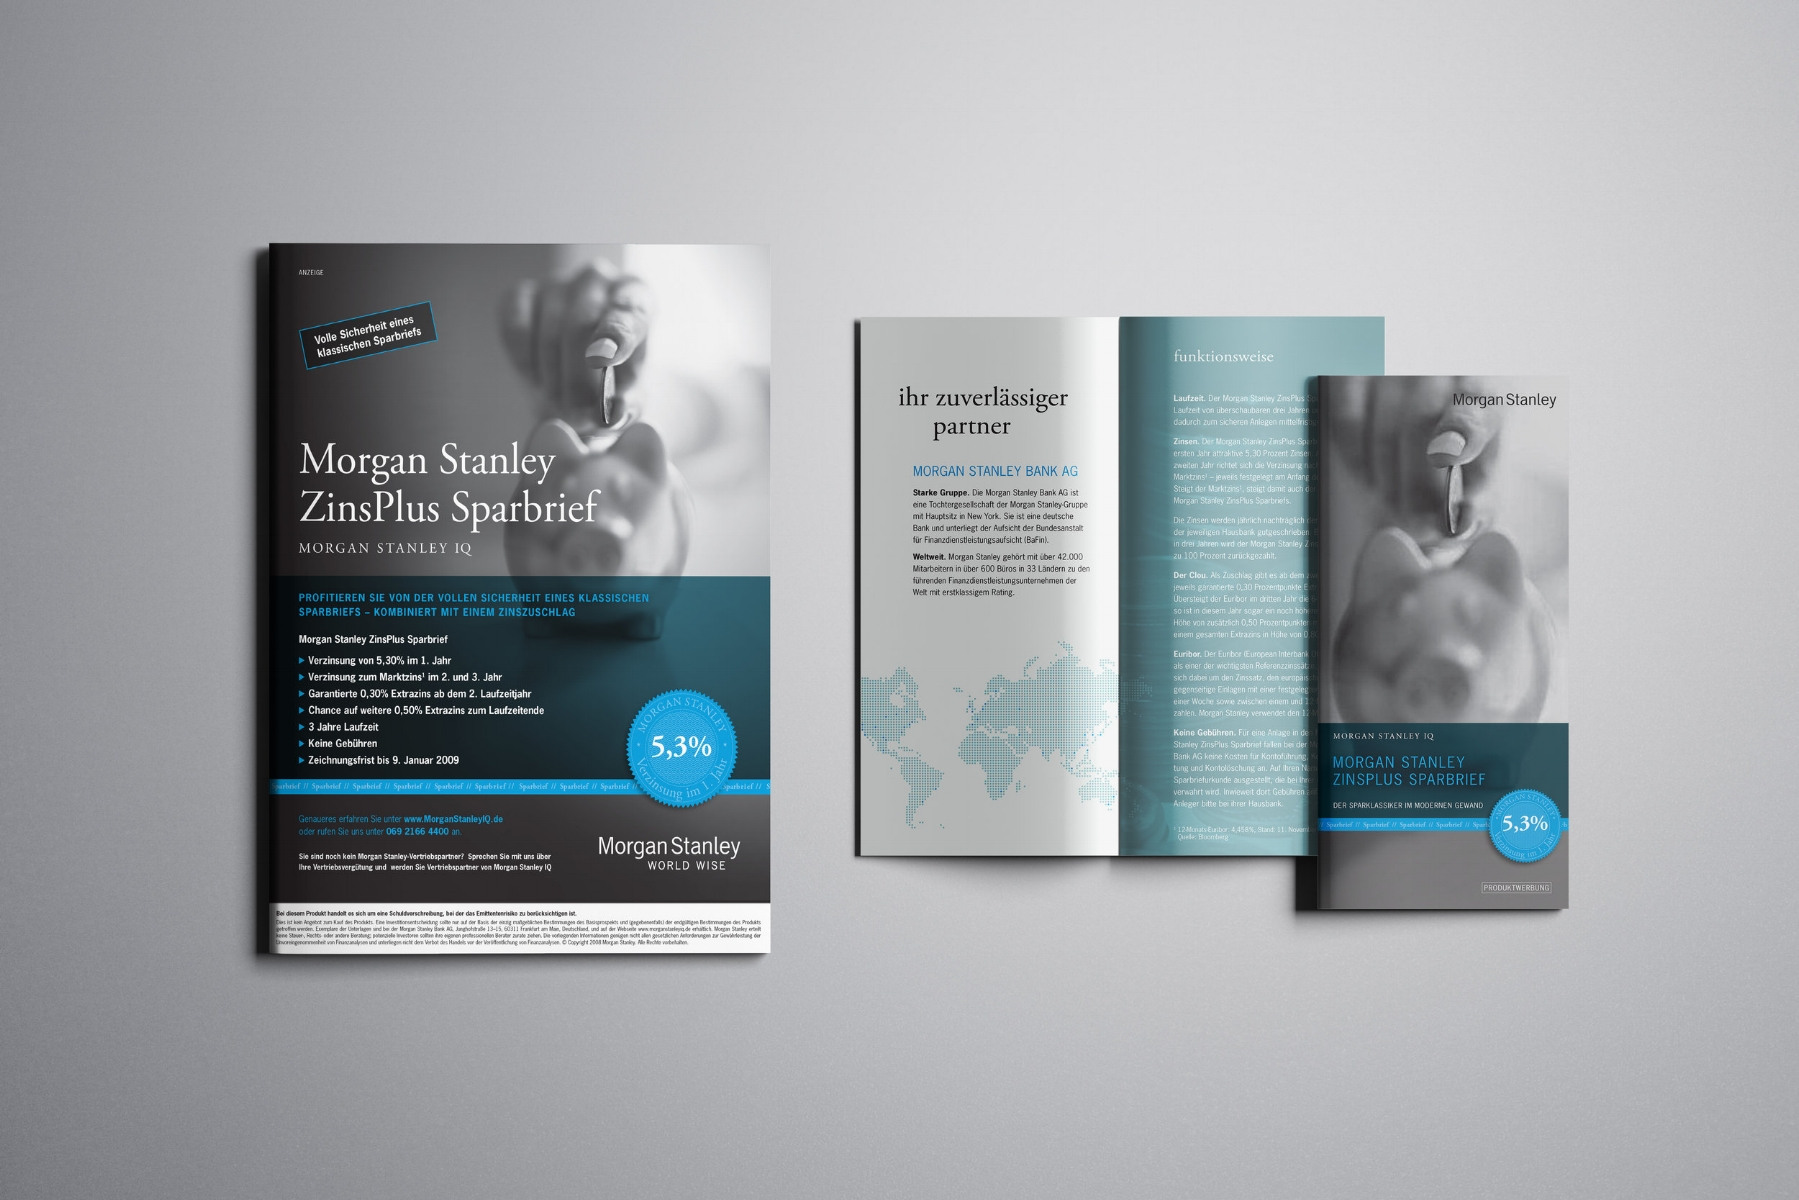 Morgan Stanley Product Communication